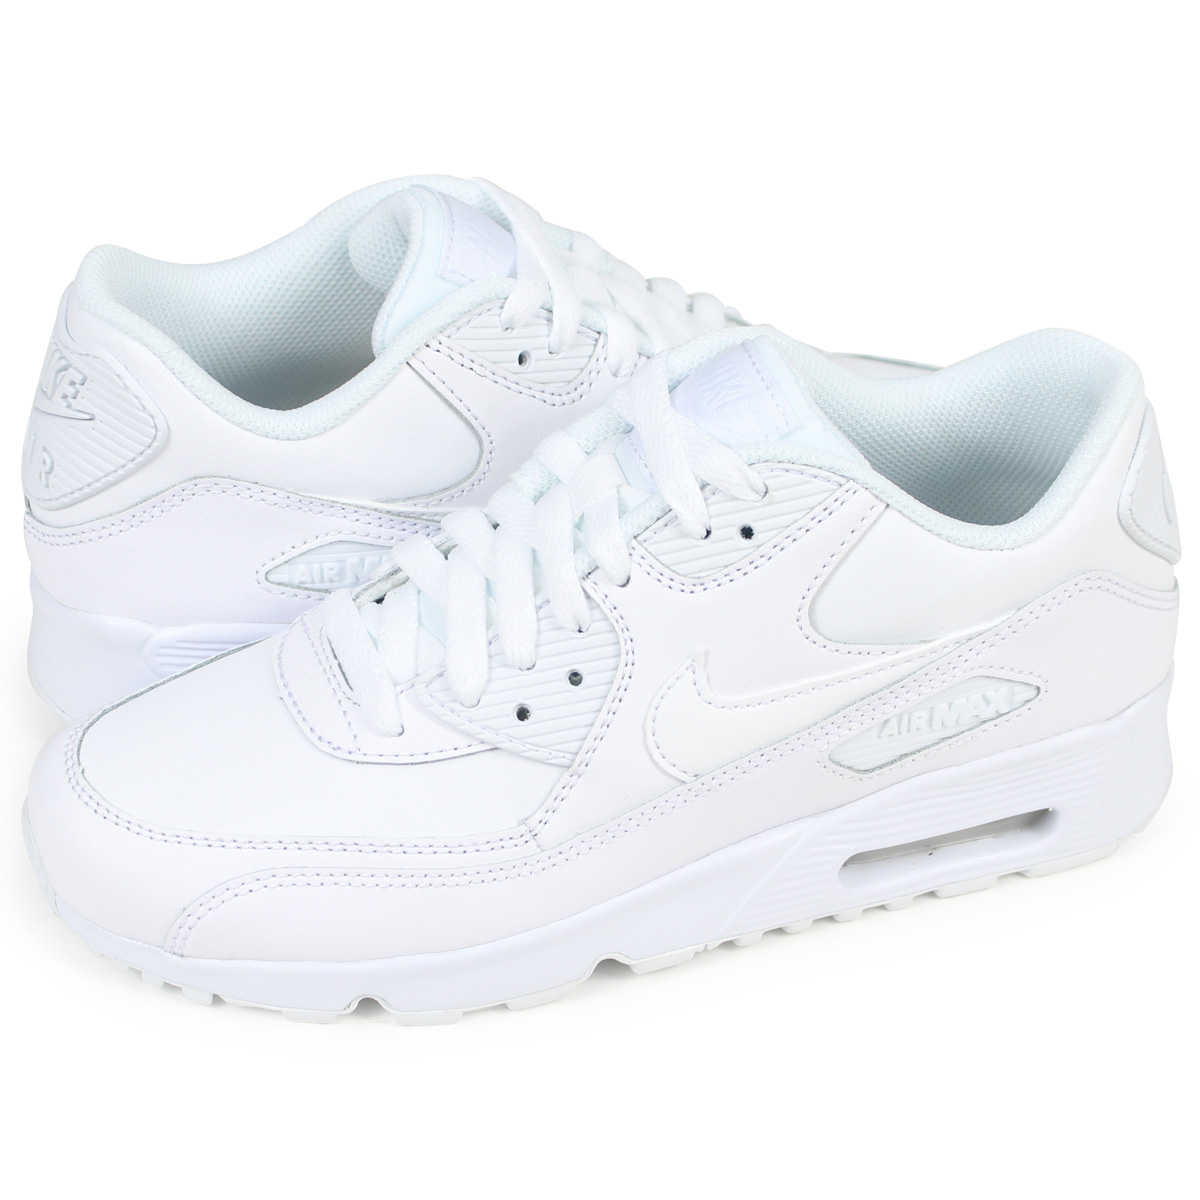 Nike Air Max Thea Nike Air Max SneakersJD Sports Nike Air Max Sneakers JD Sports